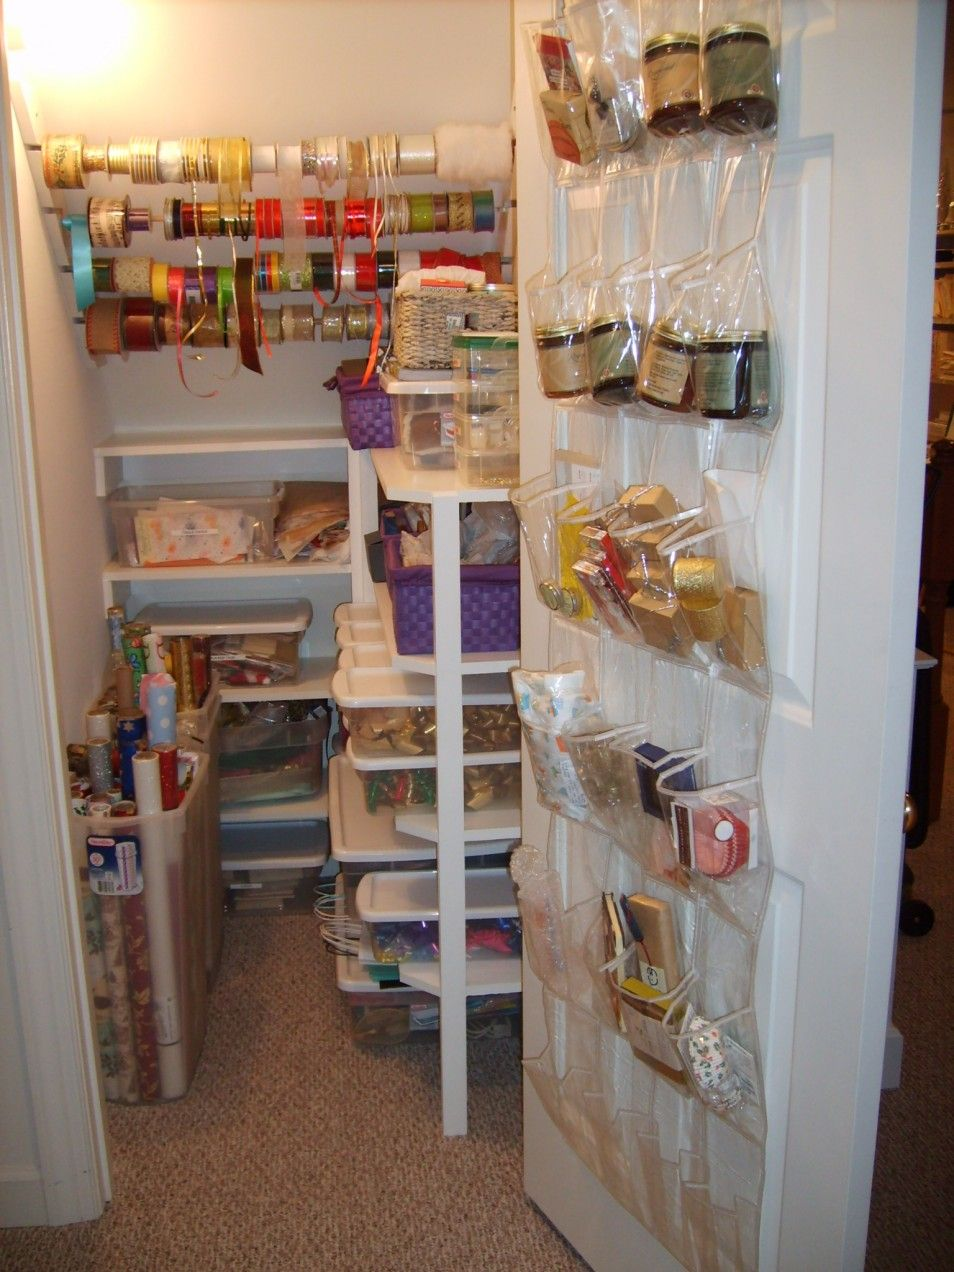 Under Stairs Kitchen Storage image result for under stair storage ideas The Amazing Kitchen Storage Ideas In Beauty Interior Design Exciting Storage Under Stairs Kitchen Storage Ideas